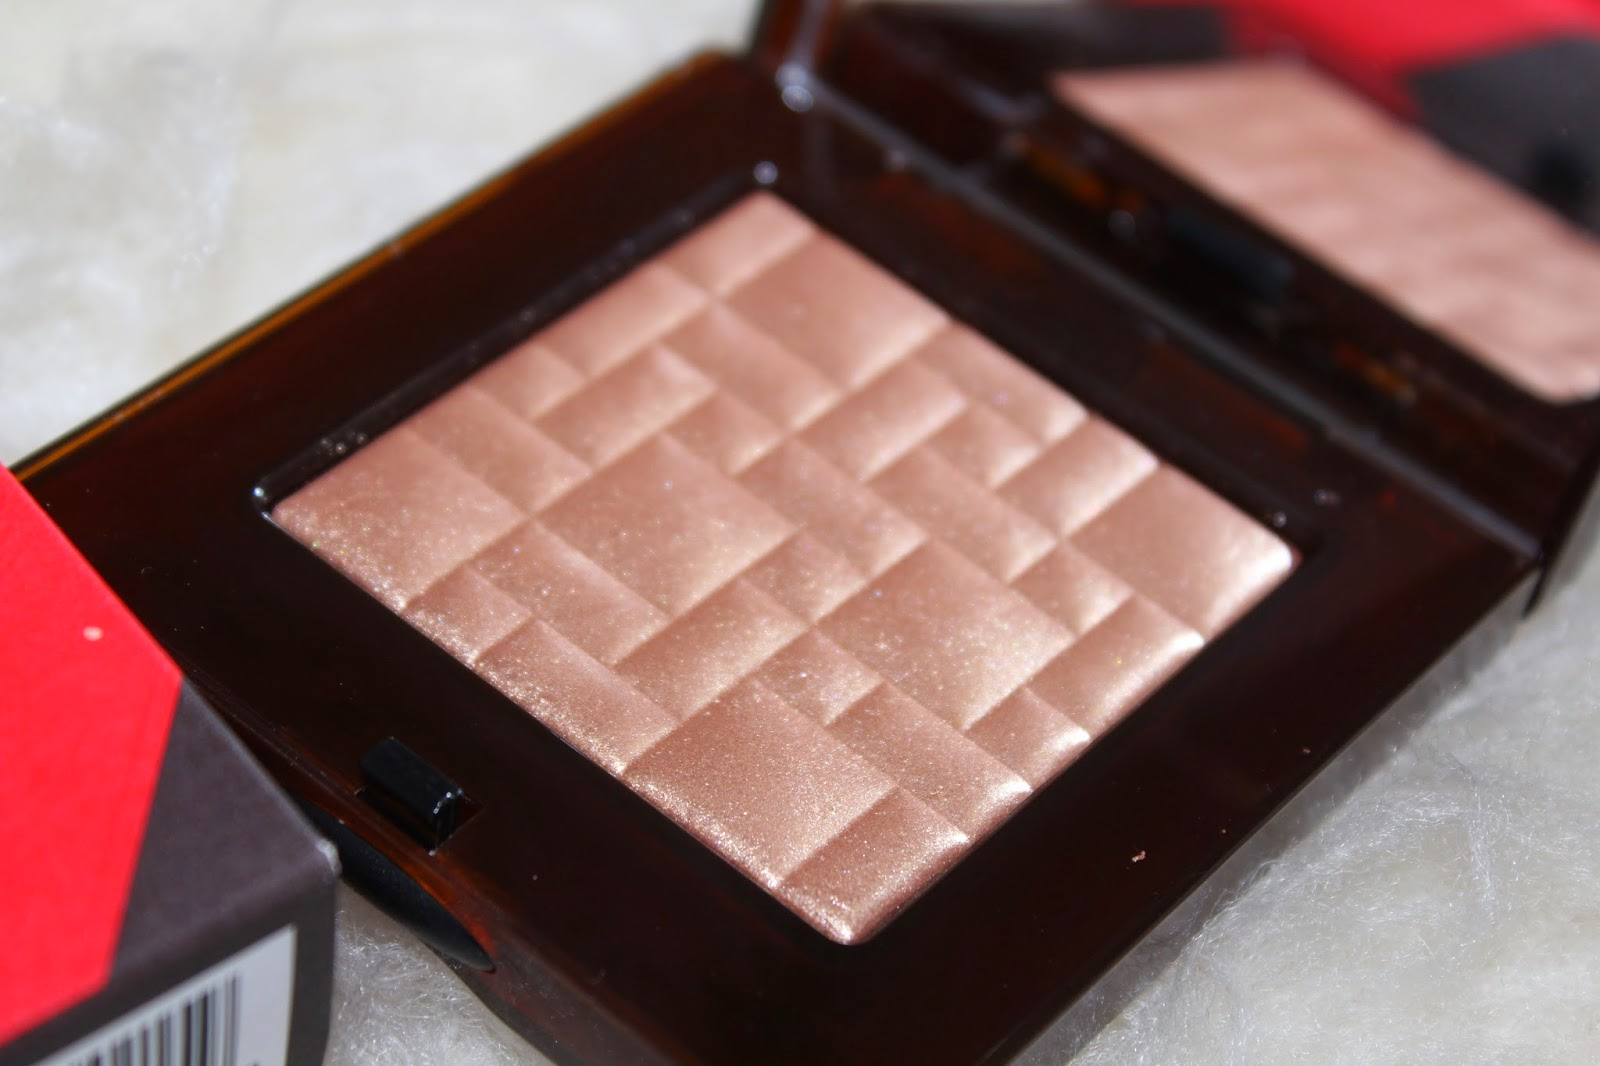 Highlighting Powder by Bobbi Brown Cosmetics #14